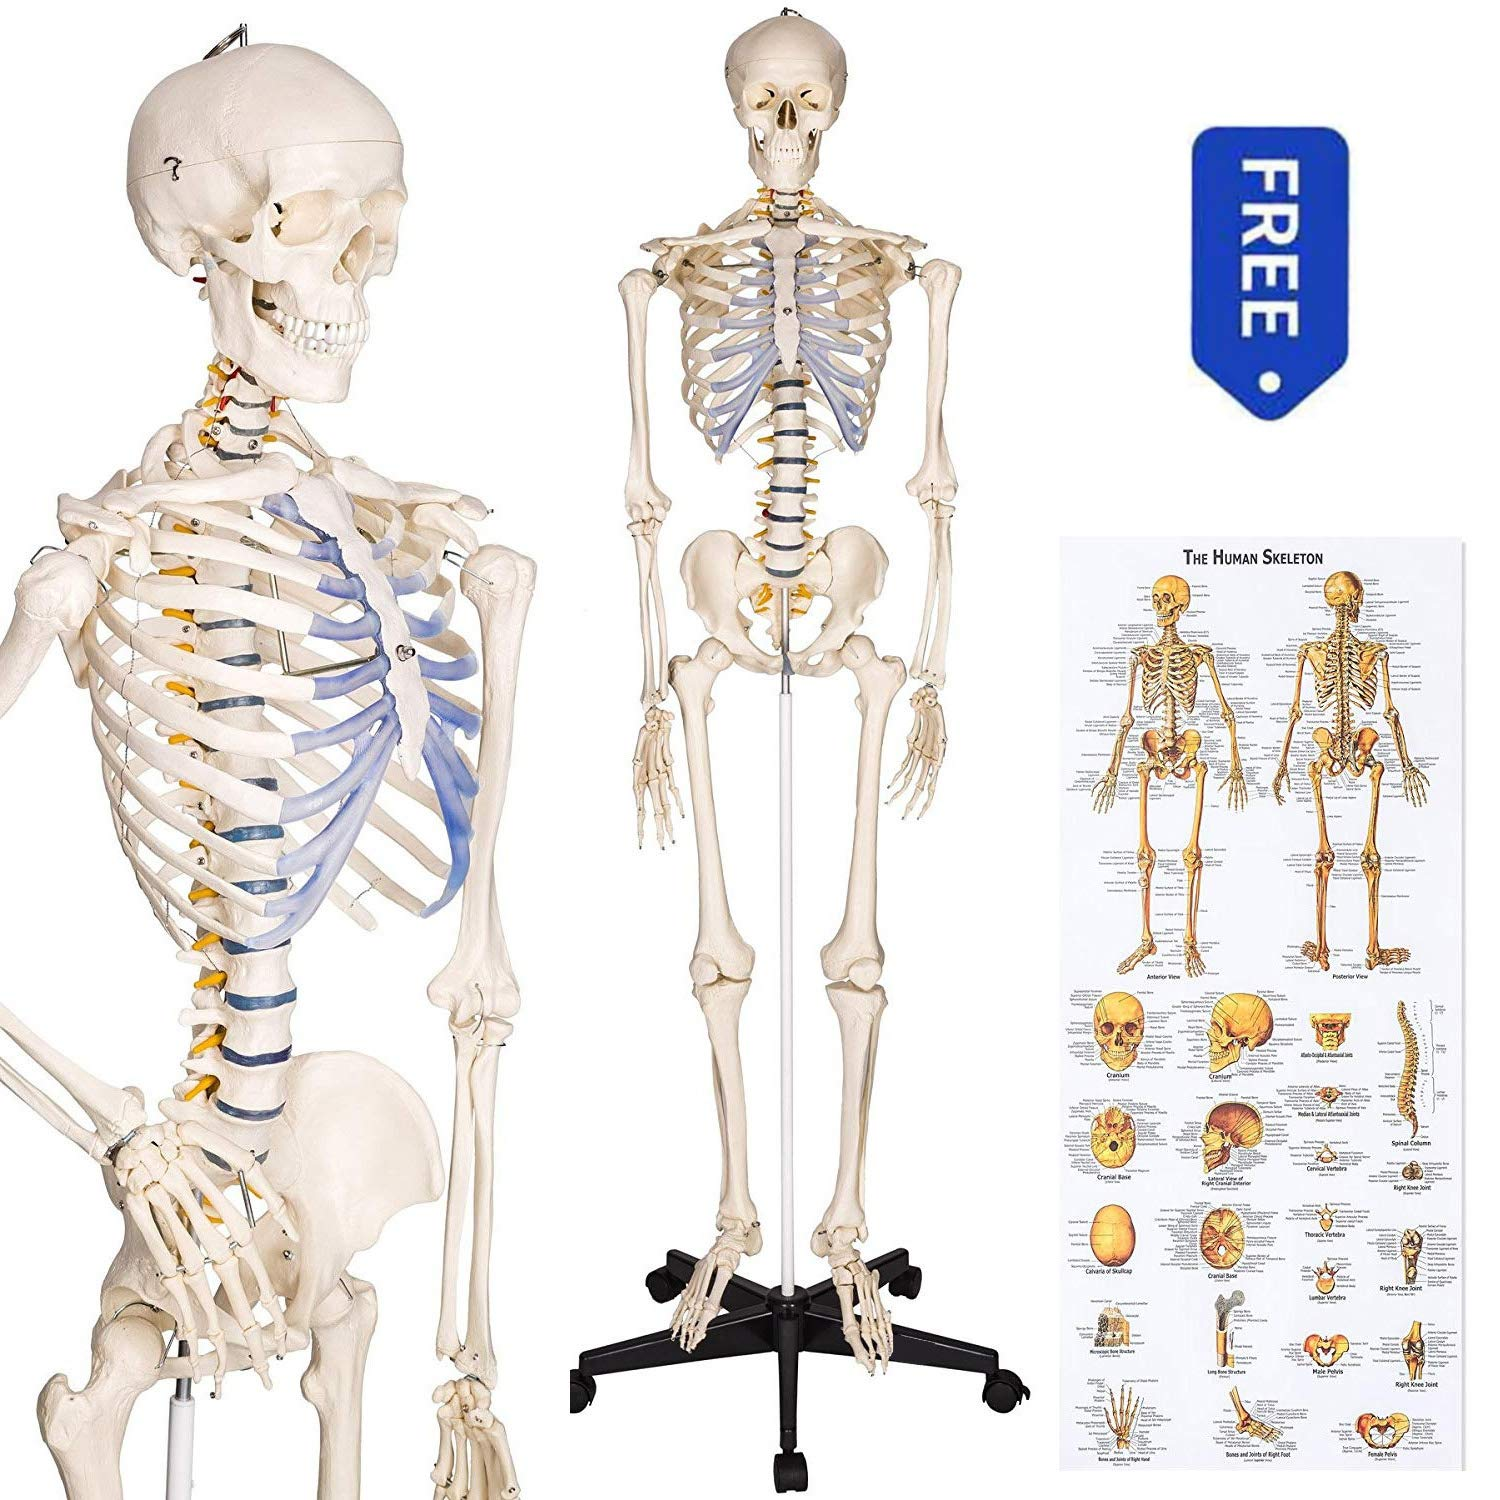 RONTEN Anatomical Skeleton lifesize 70.8 in, Including Booth + Cover + Poster